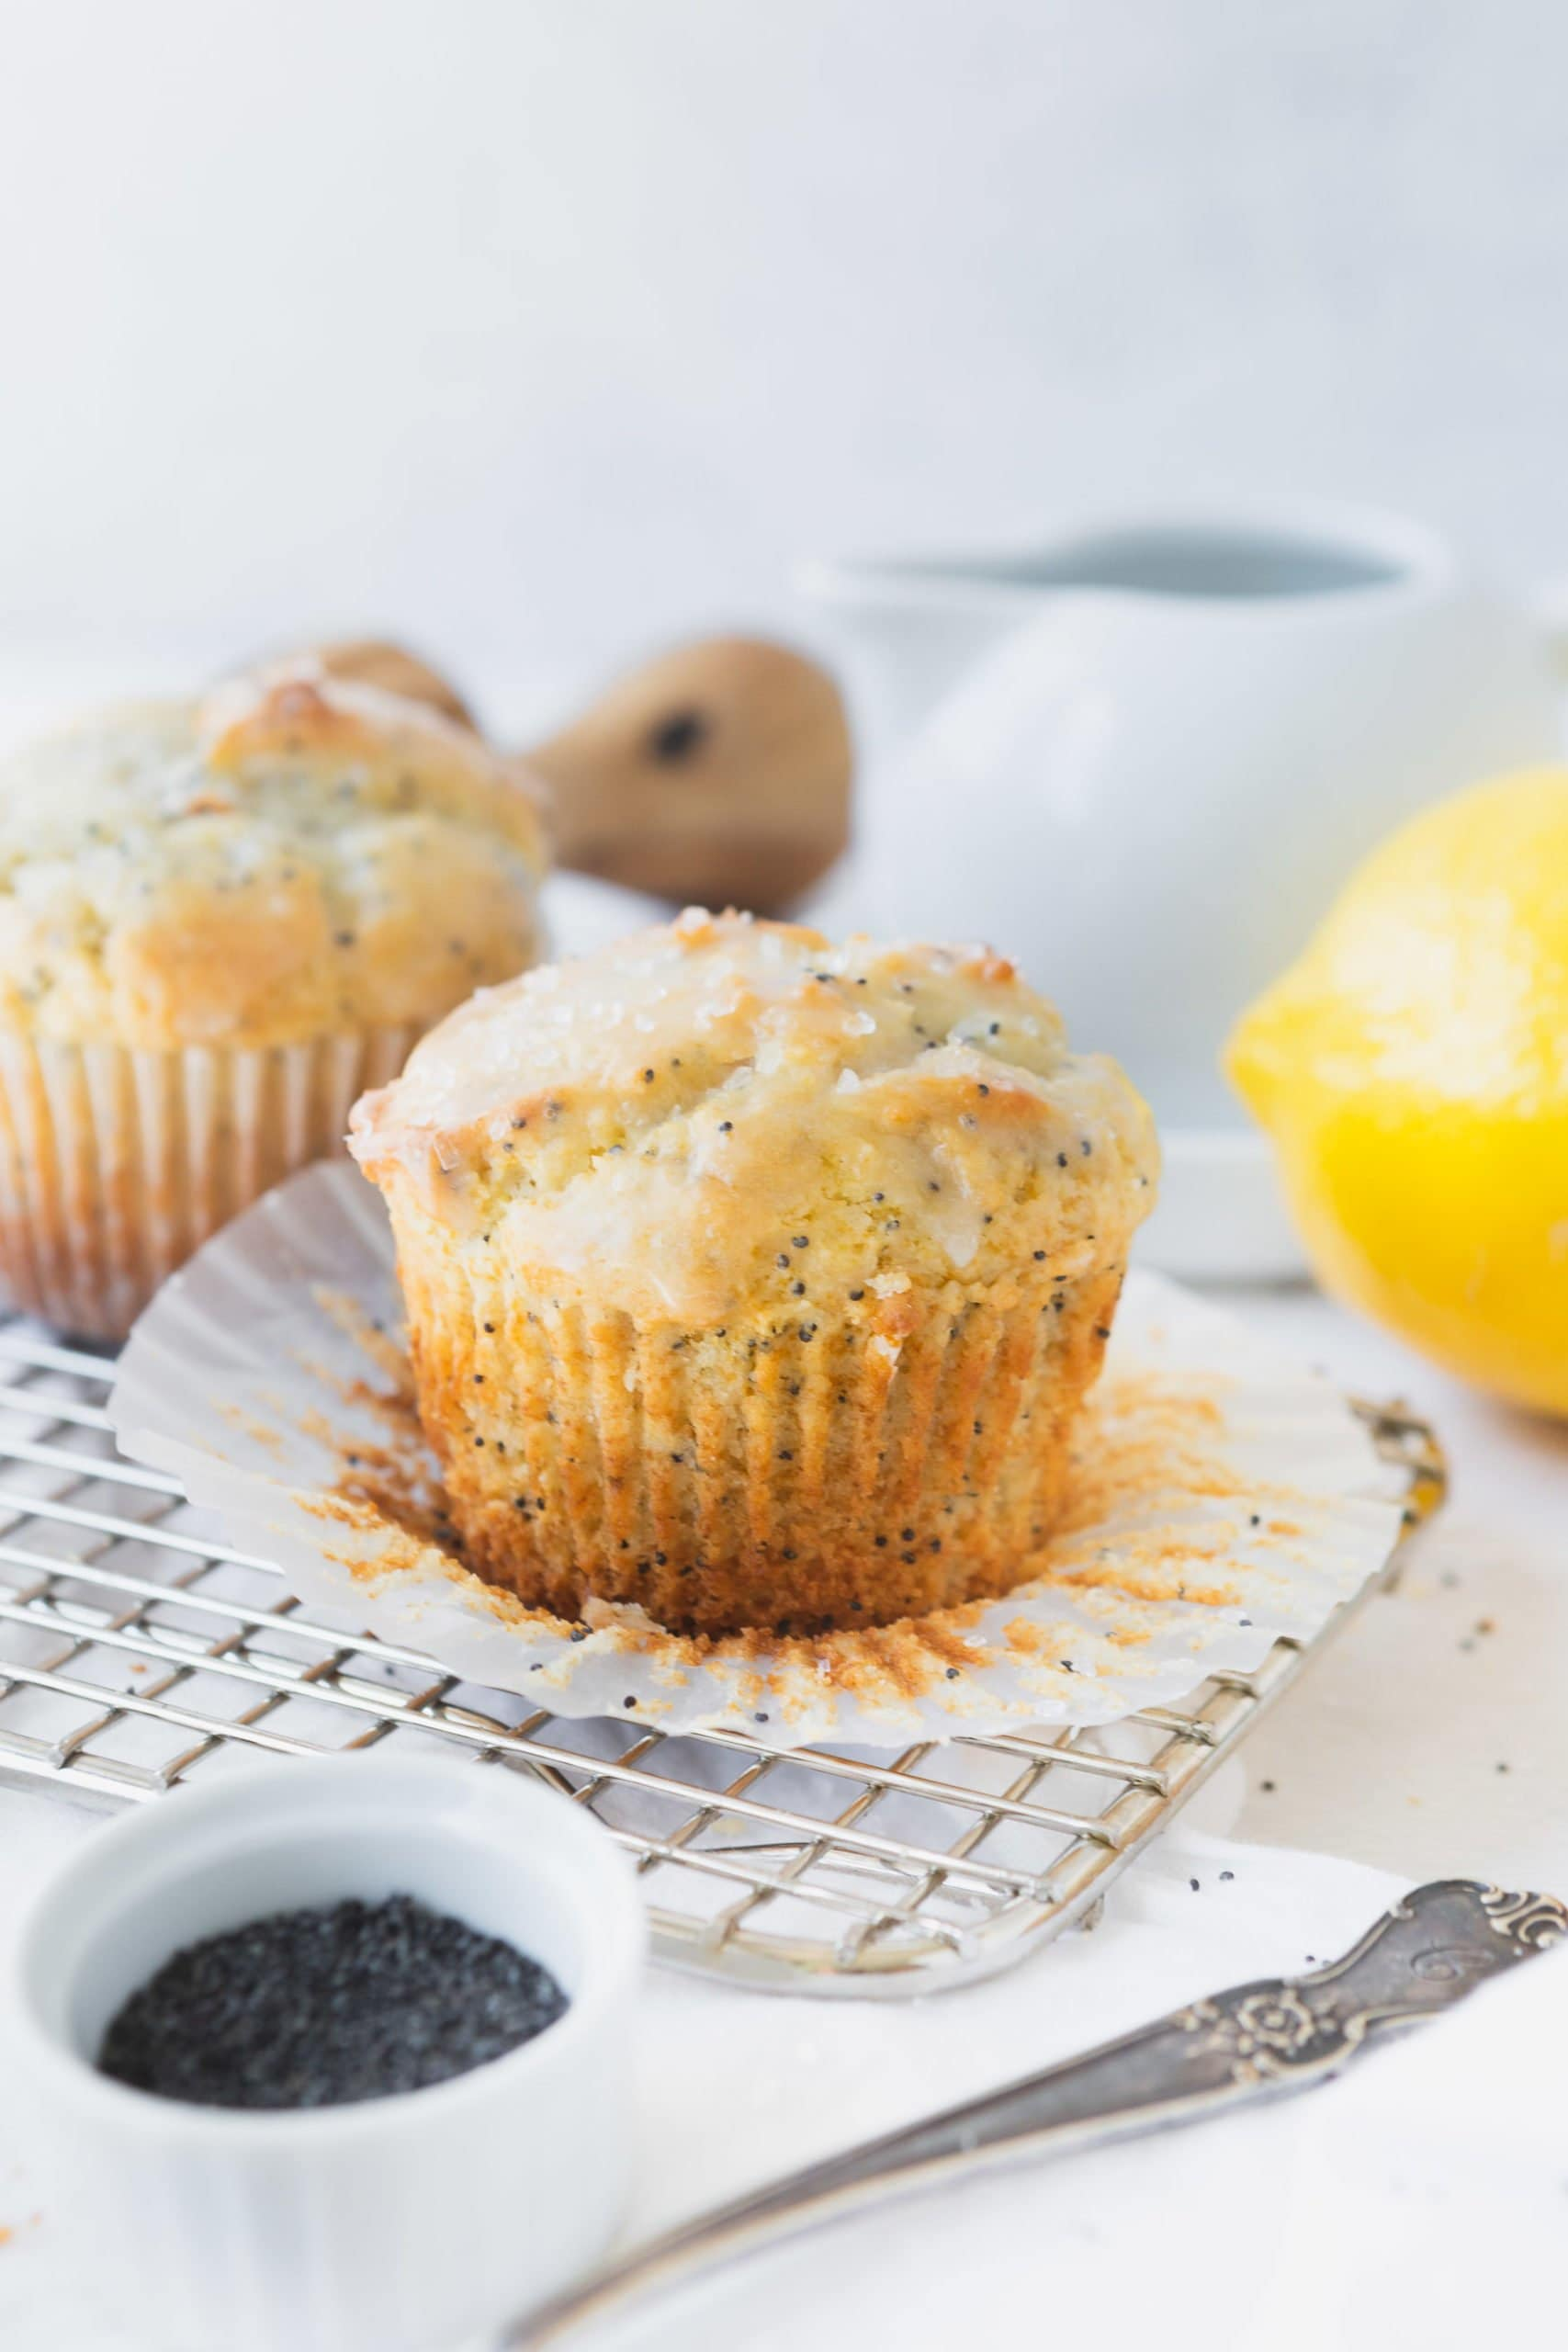 A lemon poppy seed muffin that has the paper liner peeled back. The muffin is glazed with a lemon glaze and there is another muffin and a lemon, a container of poppy seeds in the background.